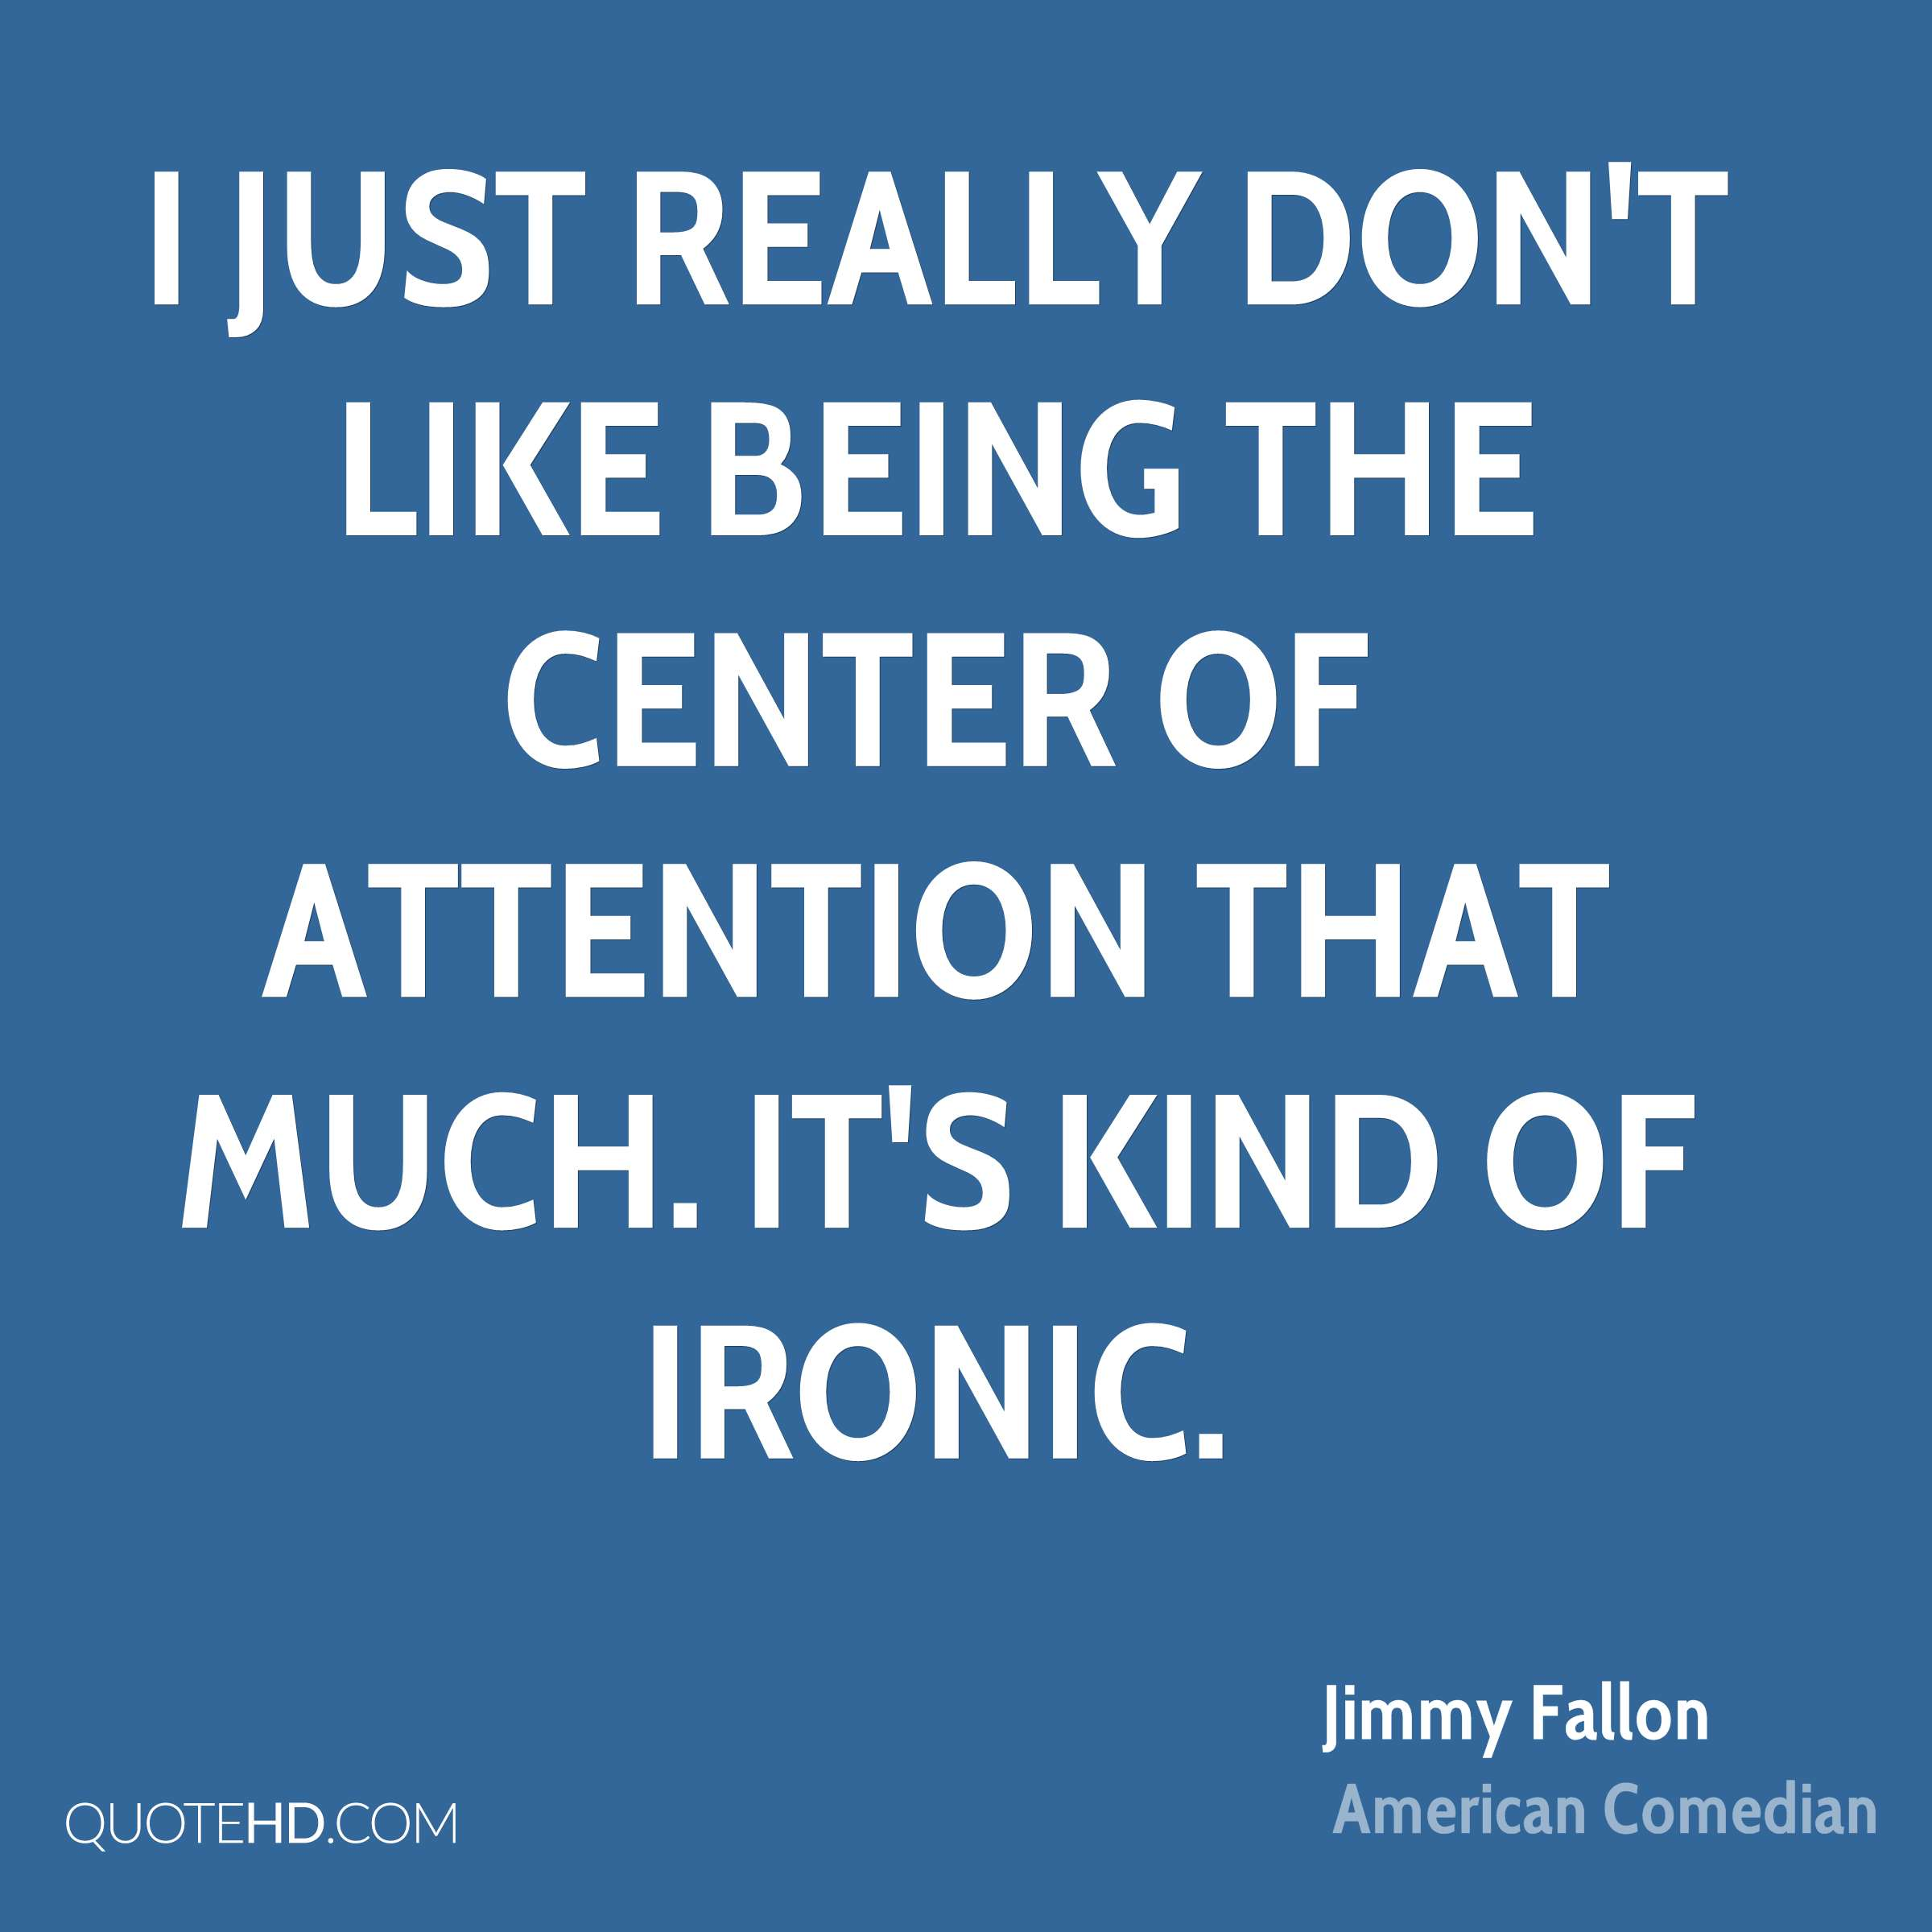 I just really don't like being the center of attention that much. It's kind of ironic.